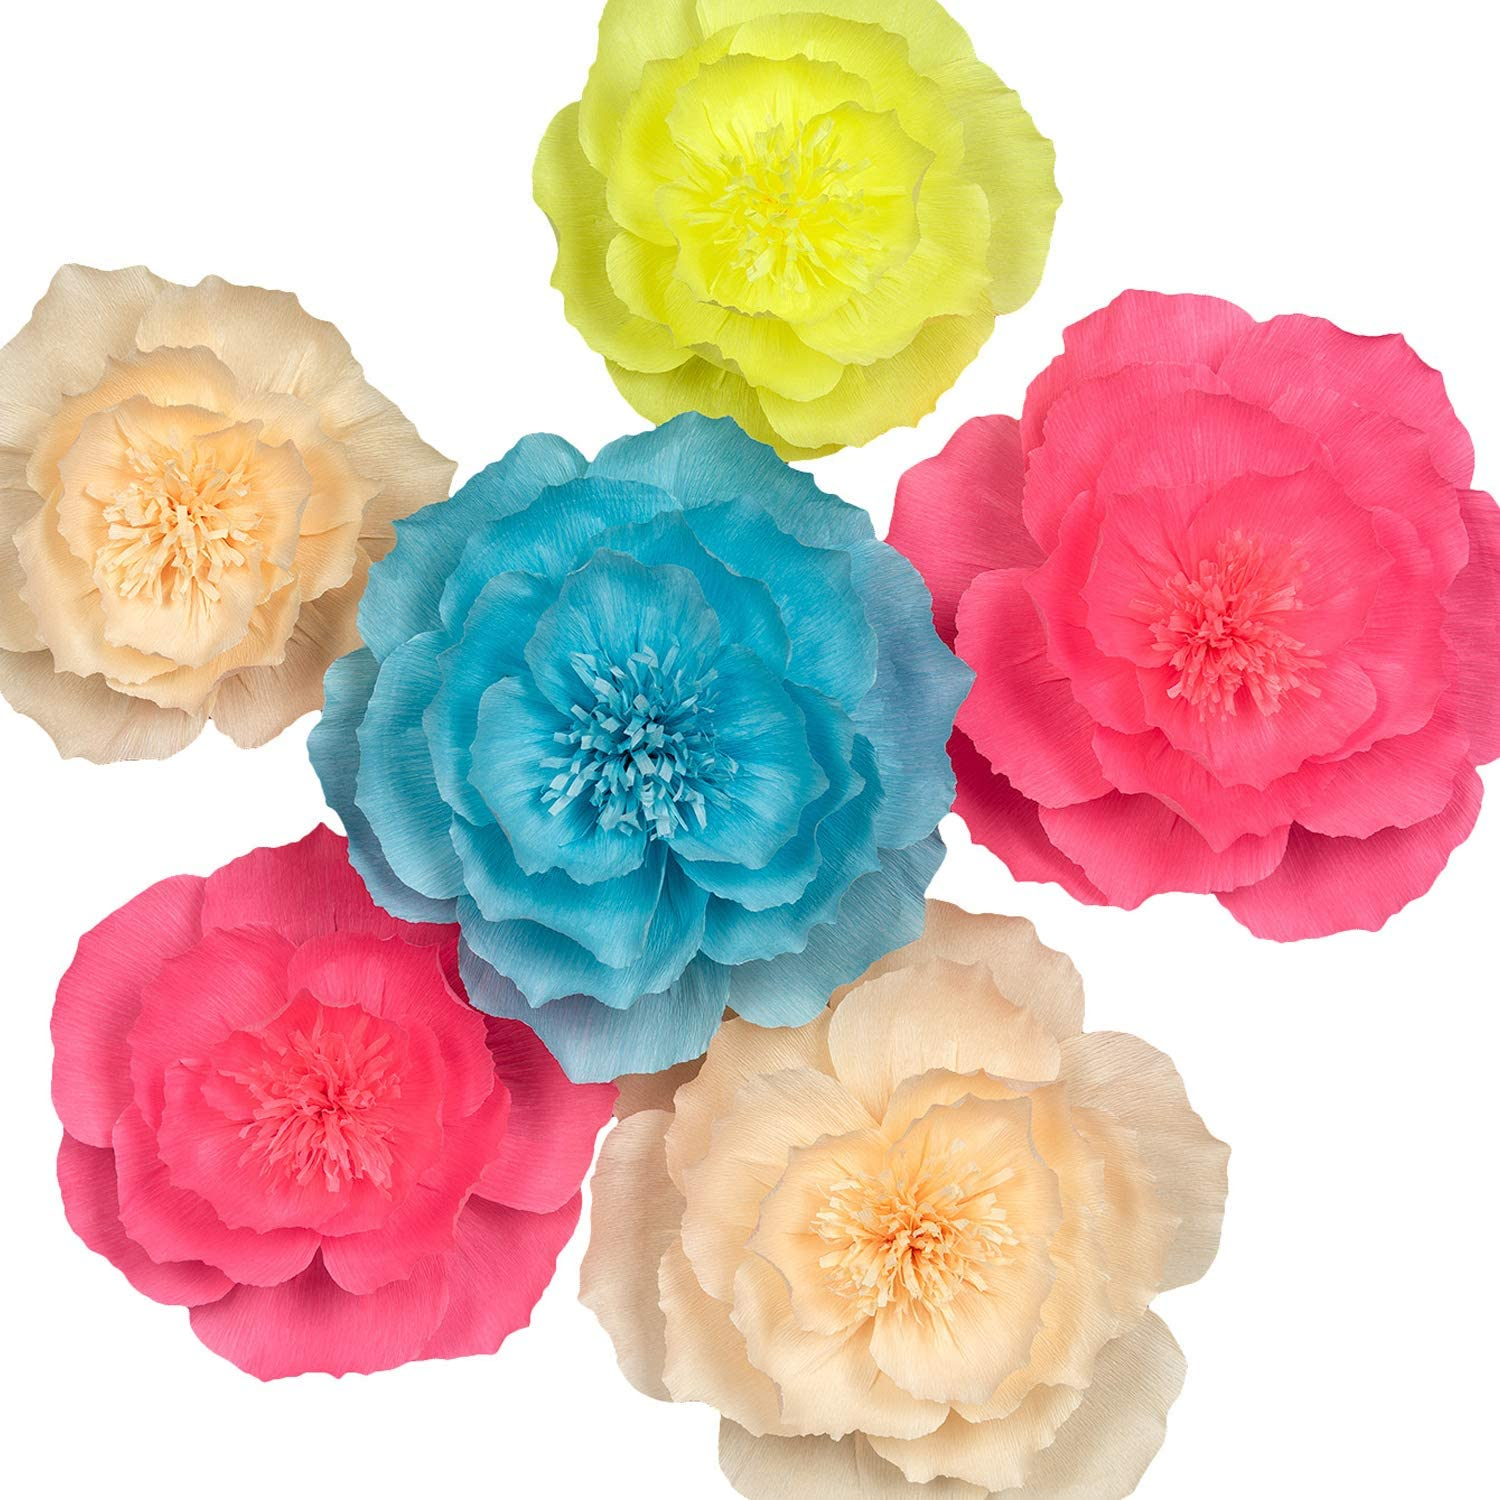 Paper Flower Decorations, Large Crepe Paper Flowers, Handcrafted Flowers, Giant Paper Flowers (Pink, Blue, Yellow, Champagne Set of 6) for Wedding, Bridal Shower, Baby Shower, Nursery Wall Decor